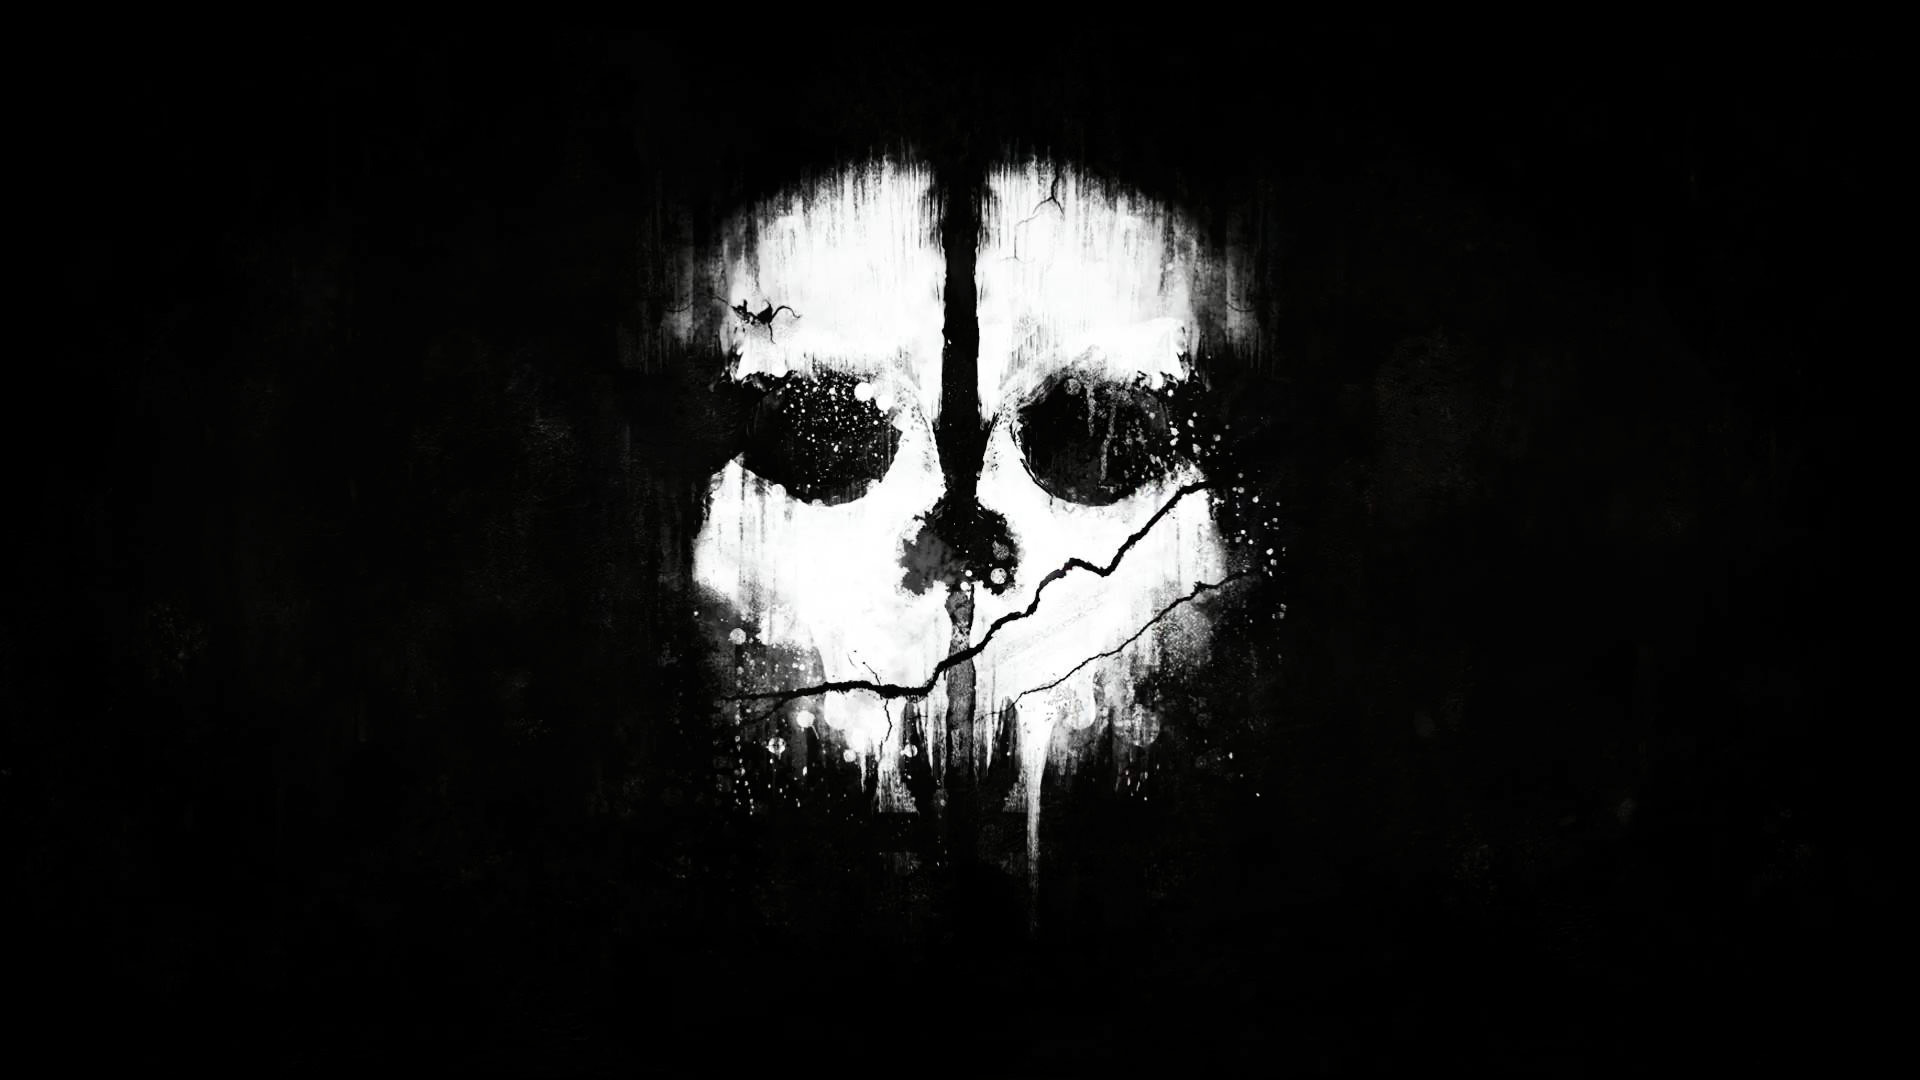 Free Download Cod Ghosts Wallpaper 1920x1080 Images Amp